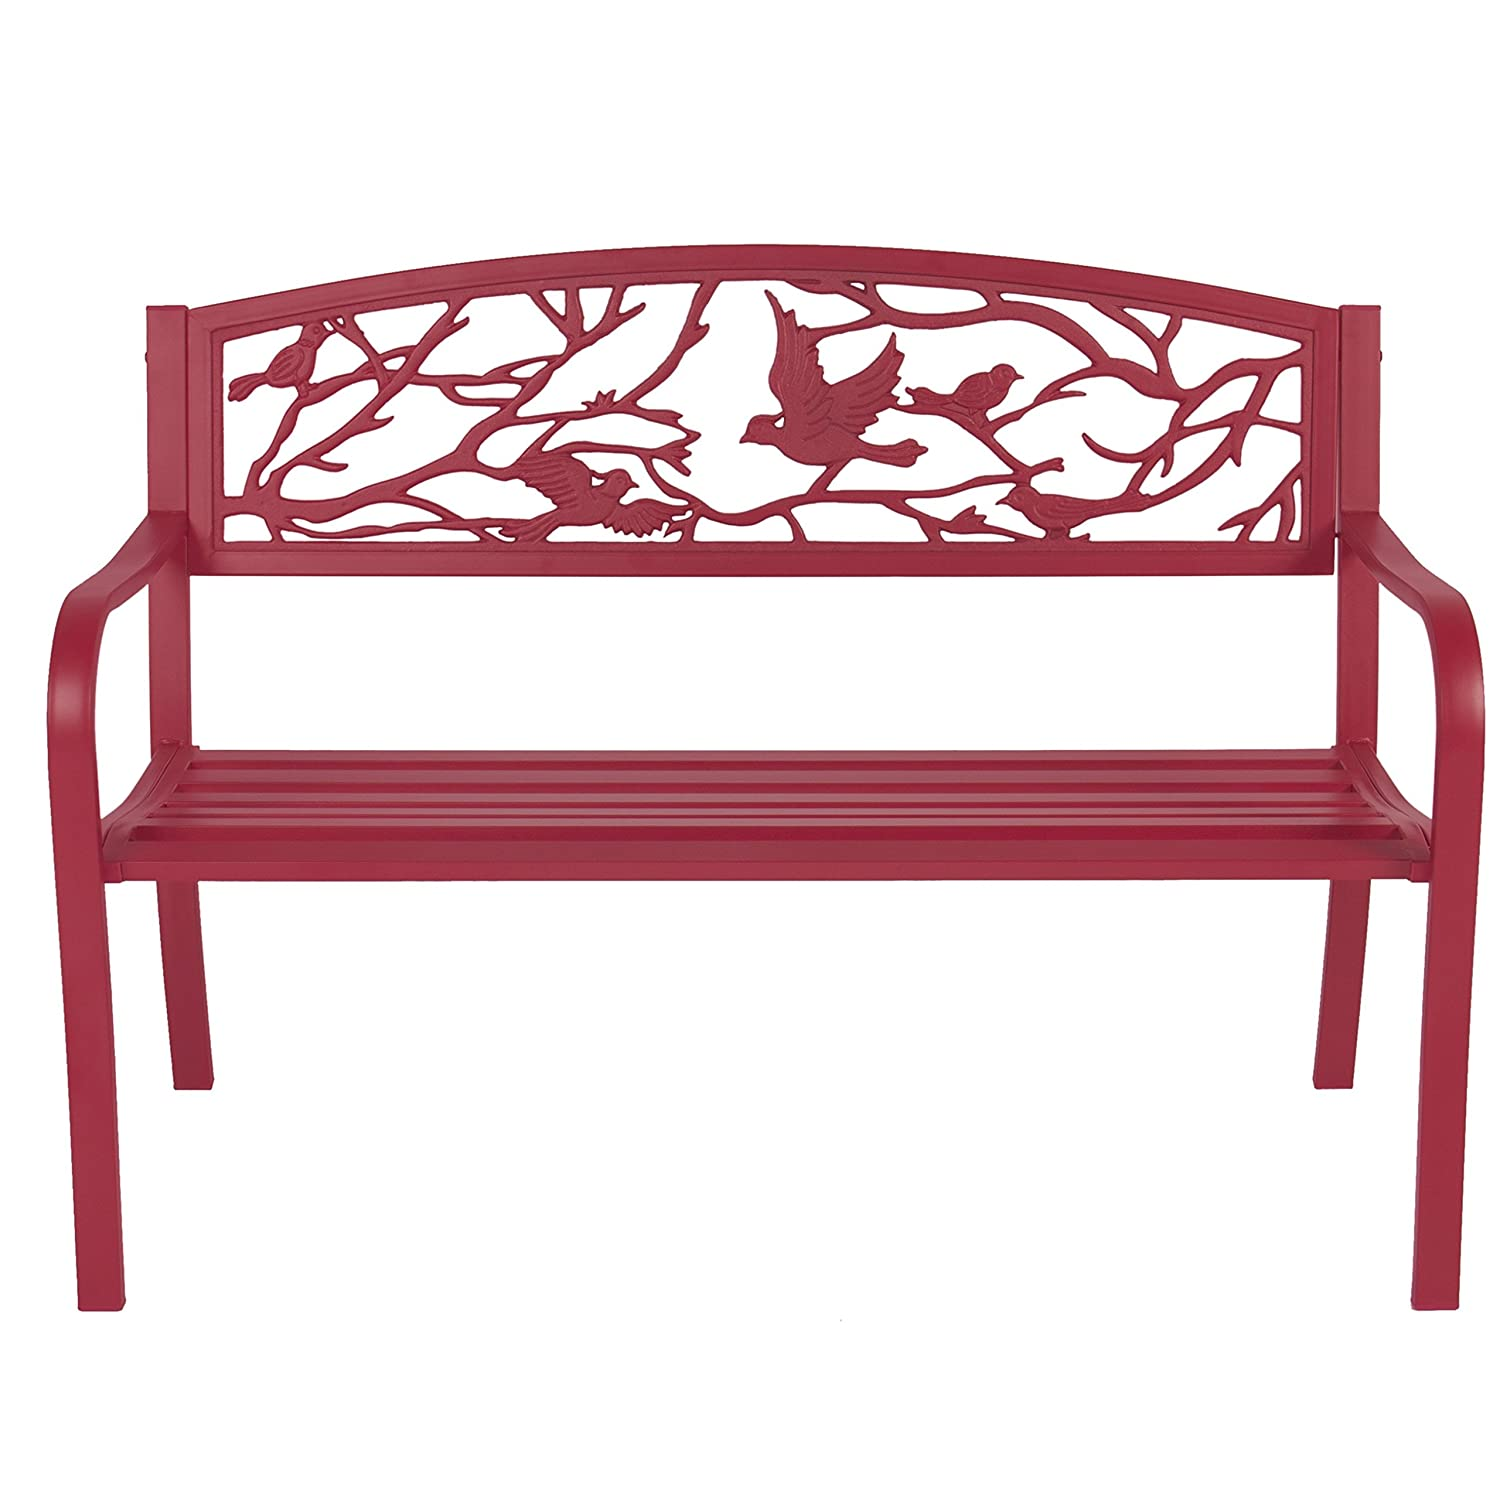 Amazon.com : Best Choice Products Steel Patio Garden Park Bench Outdoor  Living Patio Furniture, Rose Red : Garden U0026 Outdoor